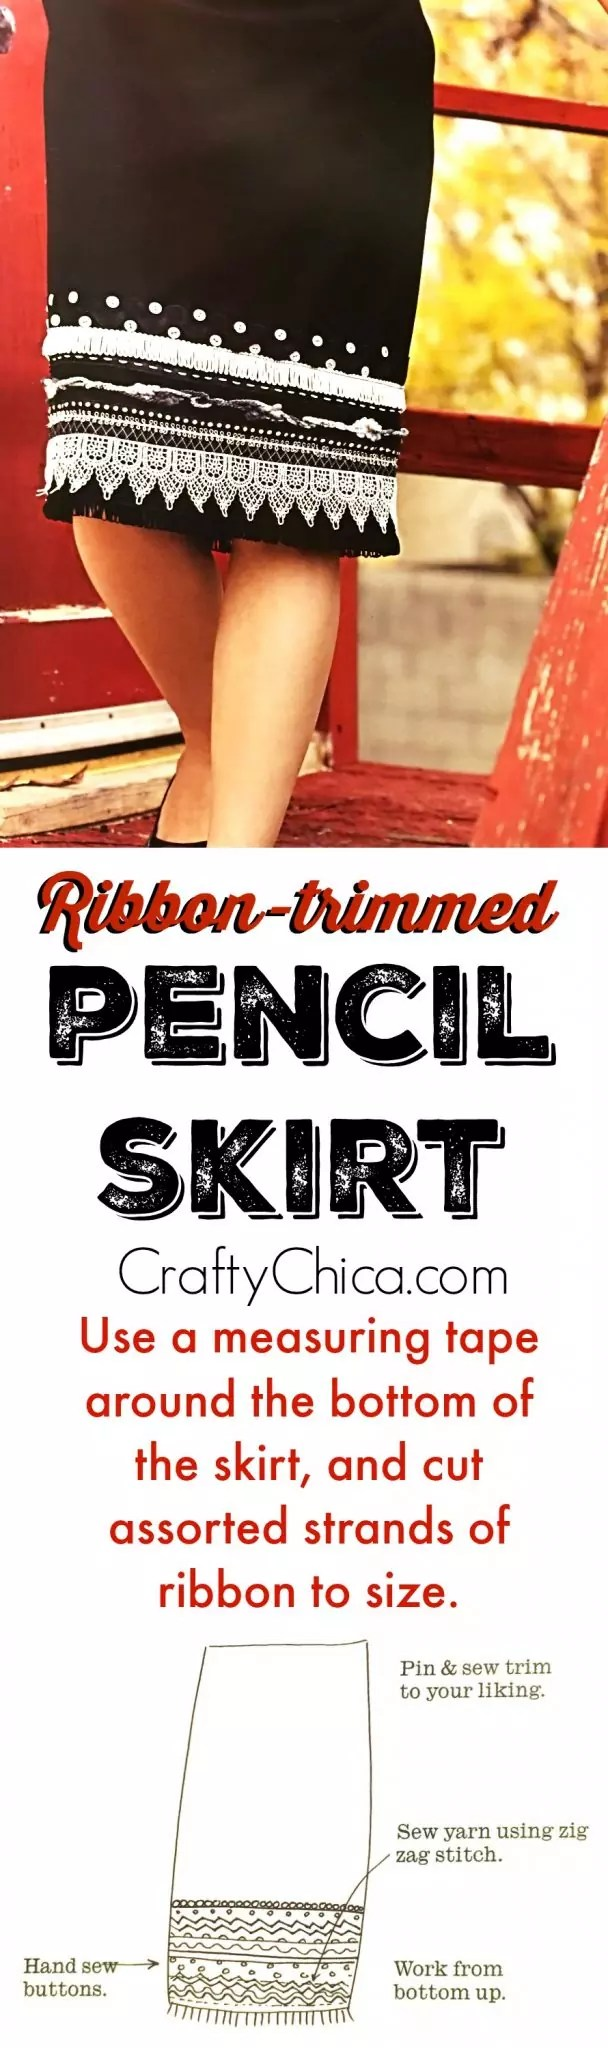 ribbon-trimmed-skirt-diy-